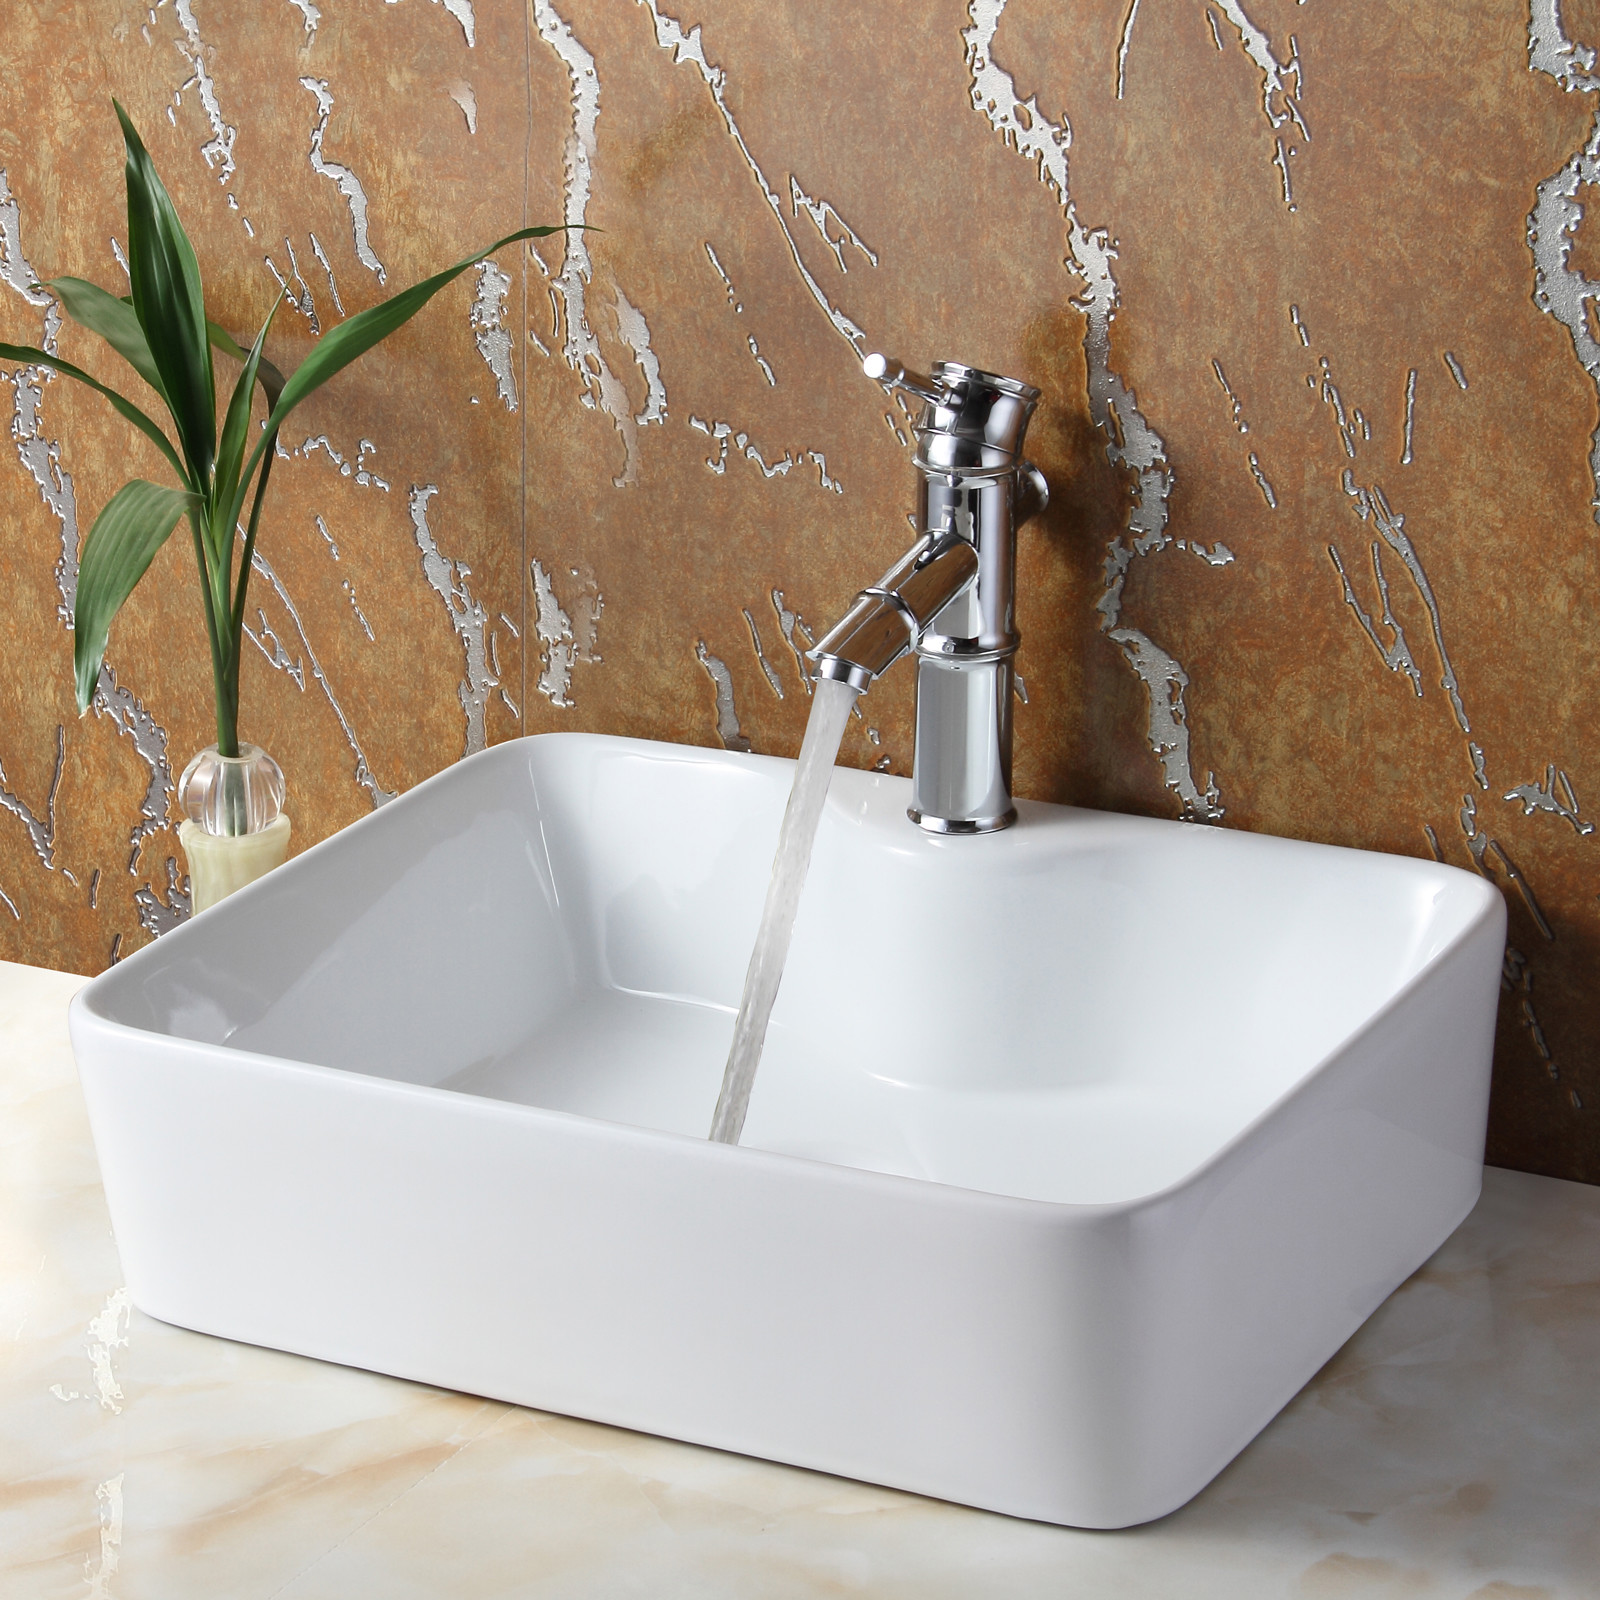 The Orderly Appeal Of Rectangular Vessel Sinks